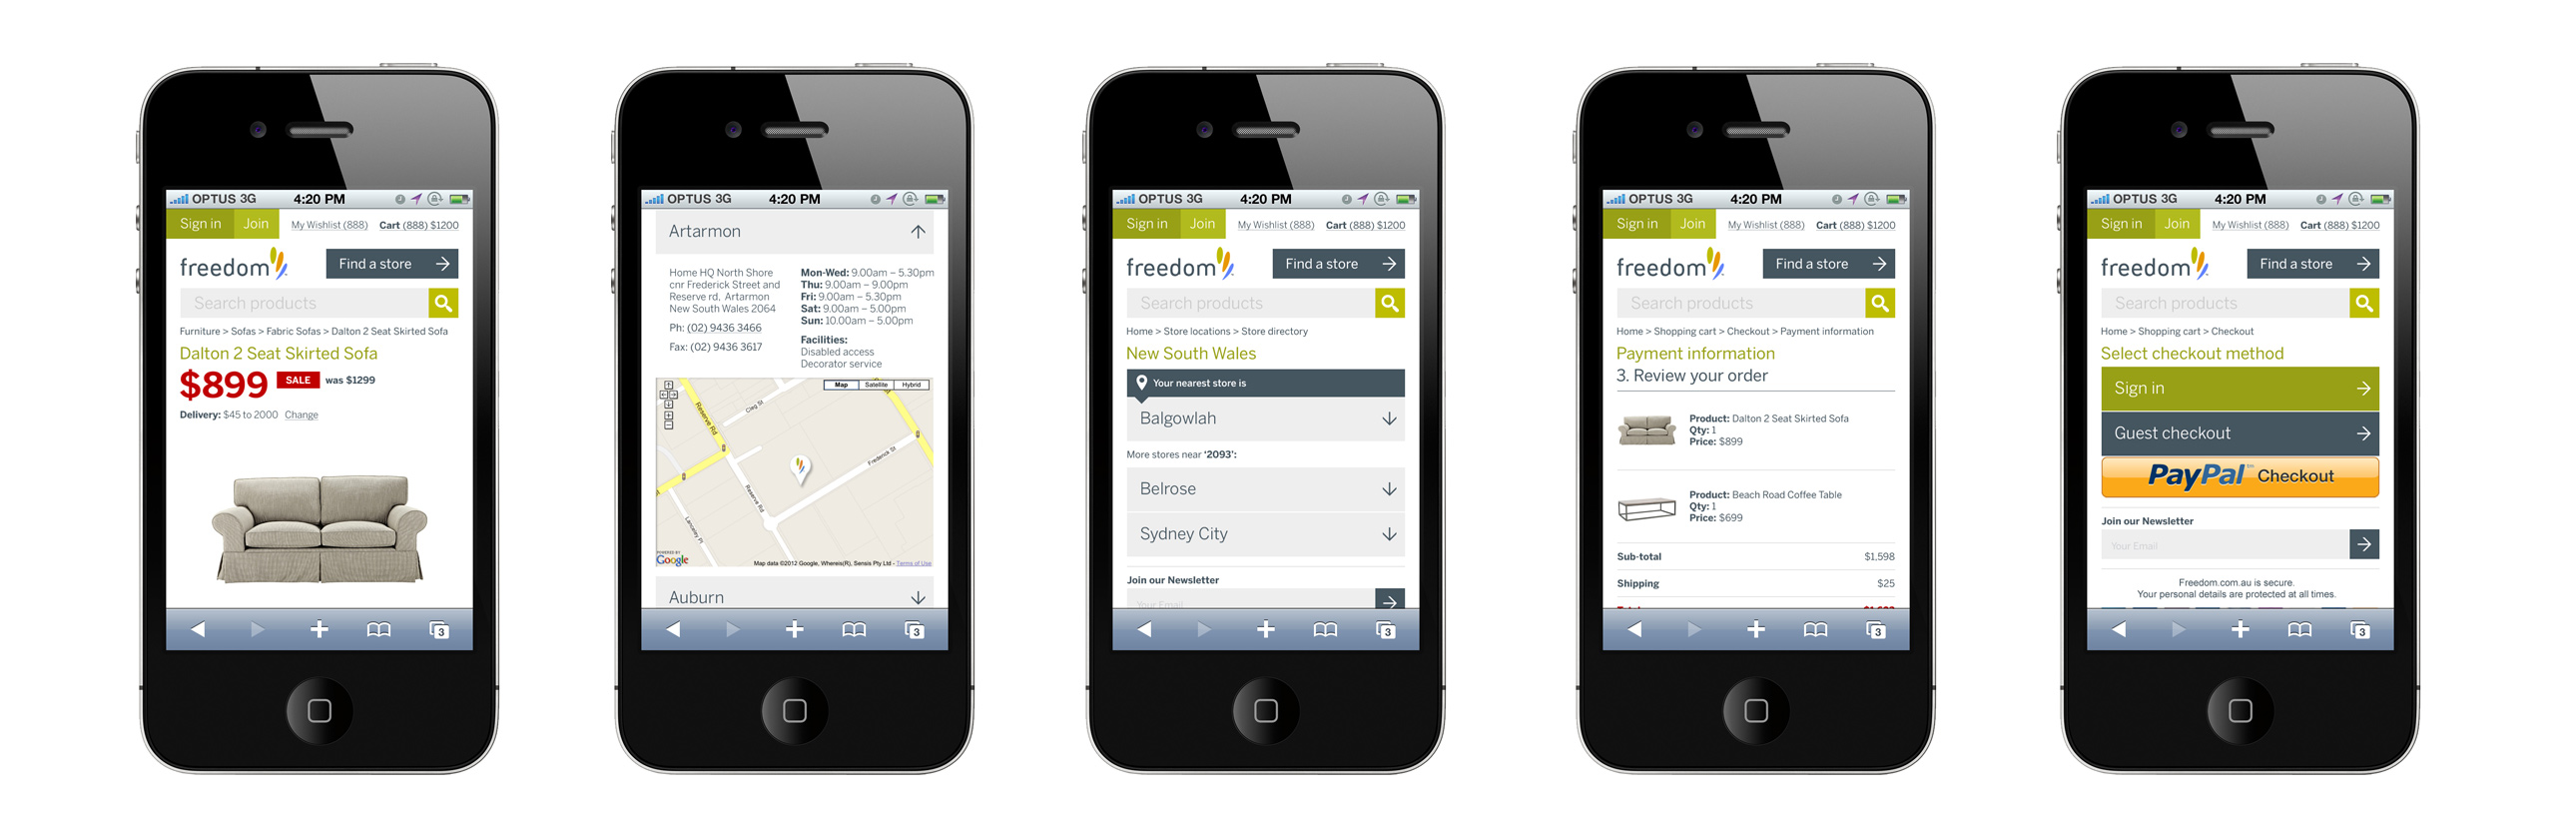 freedom_mobile_home_group